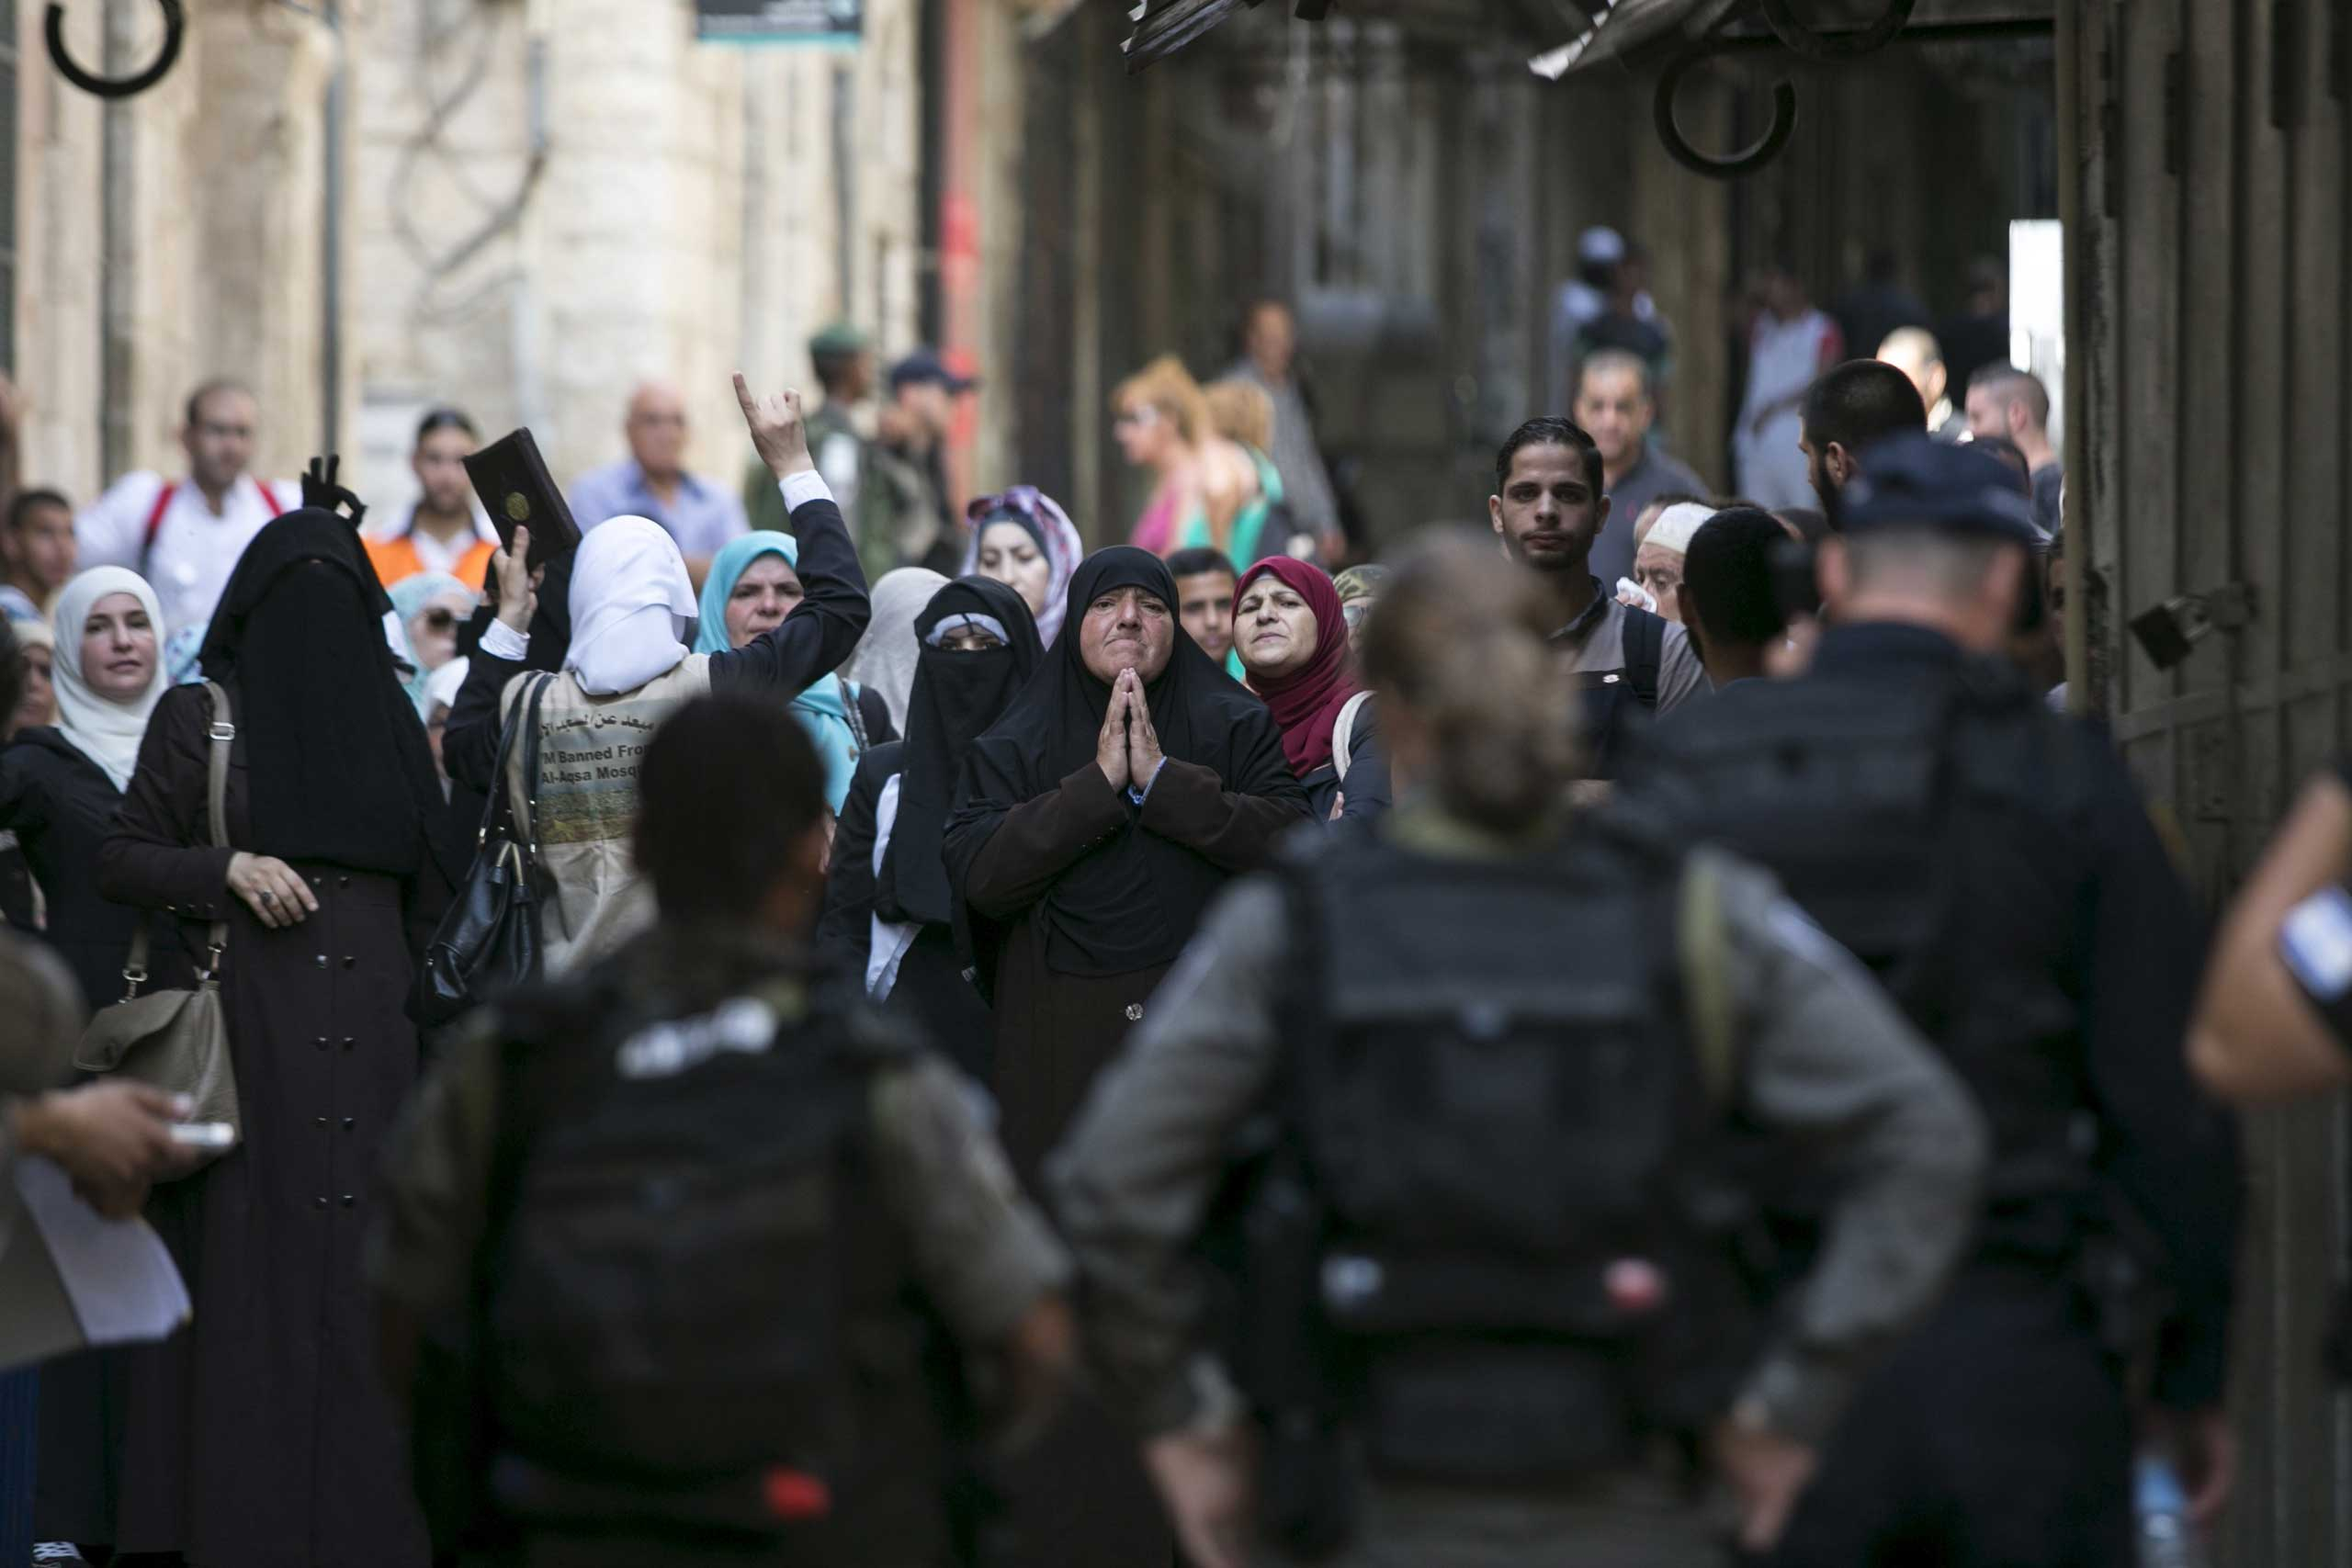 Muslim women shouts slogans as they protest in front of Israeli border police officers in Jerusalem's Old City, on Sept. 15, 2015.